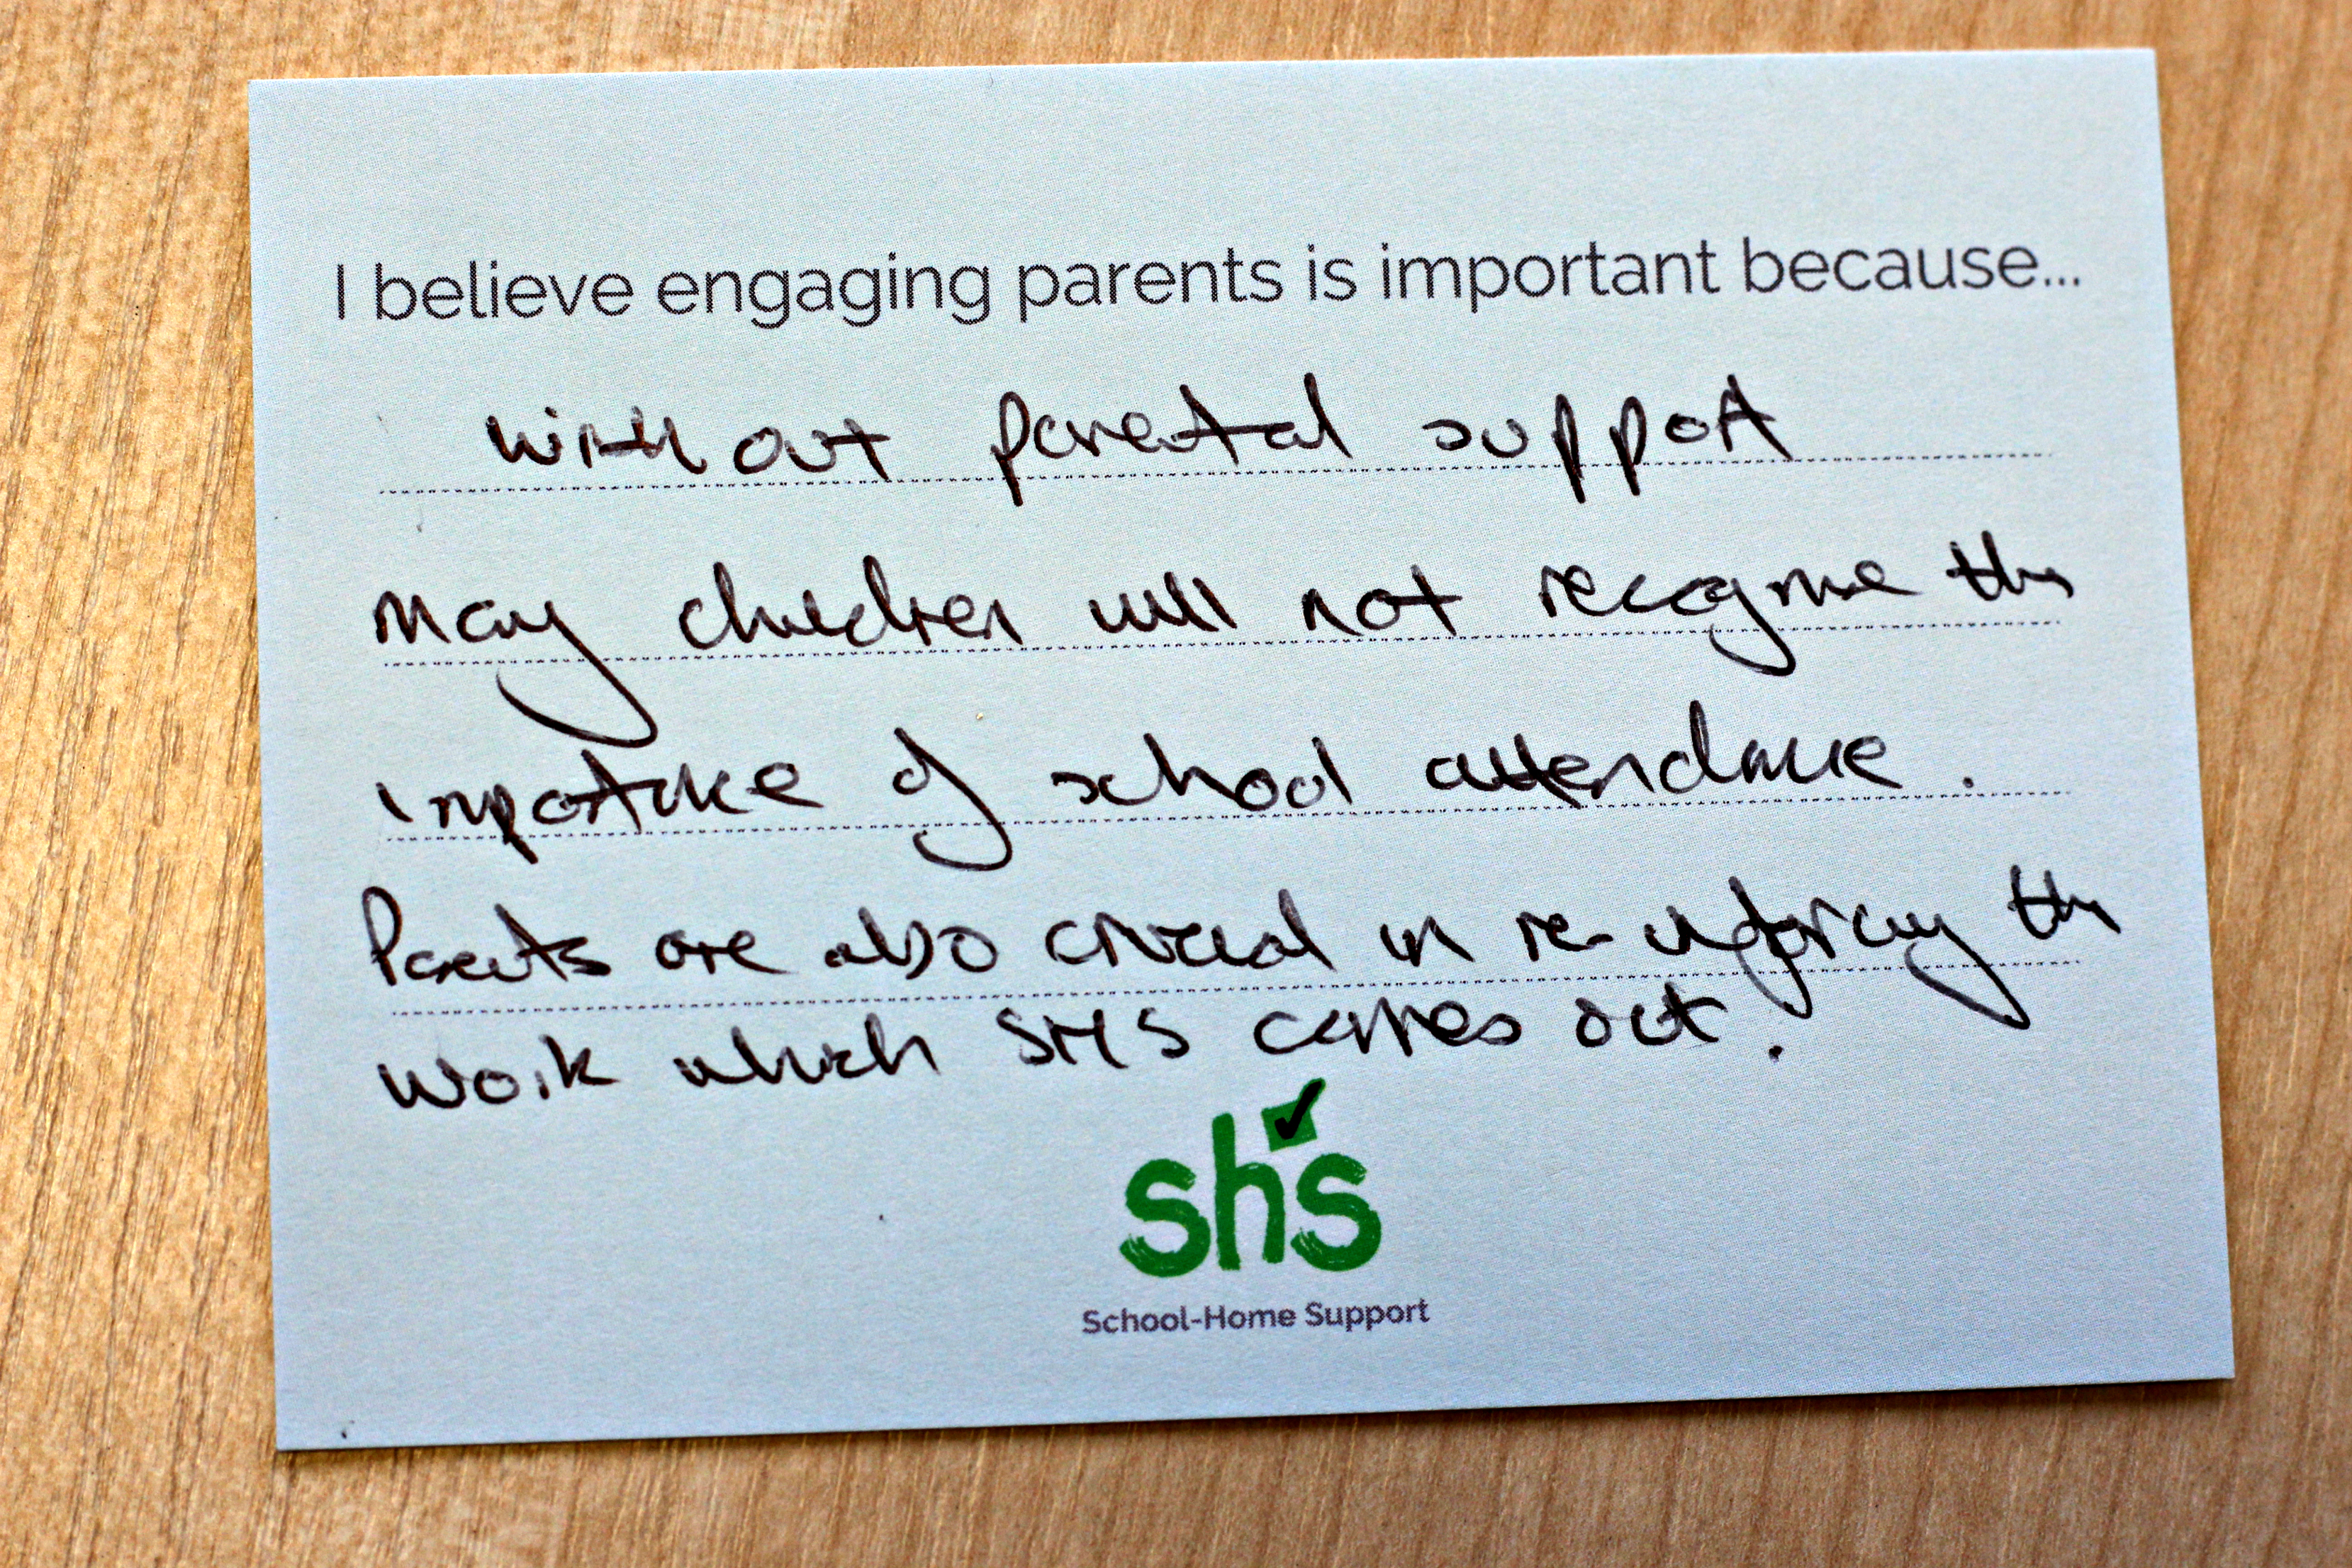 A card from the Engaging Parents engagement board